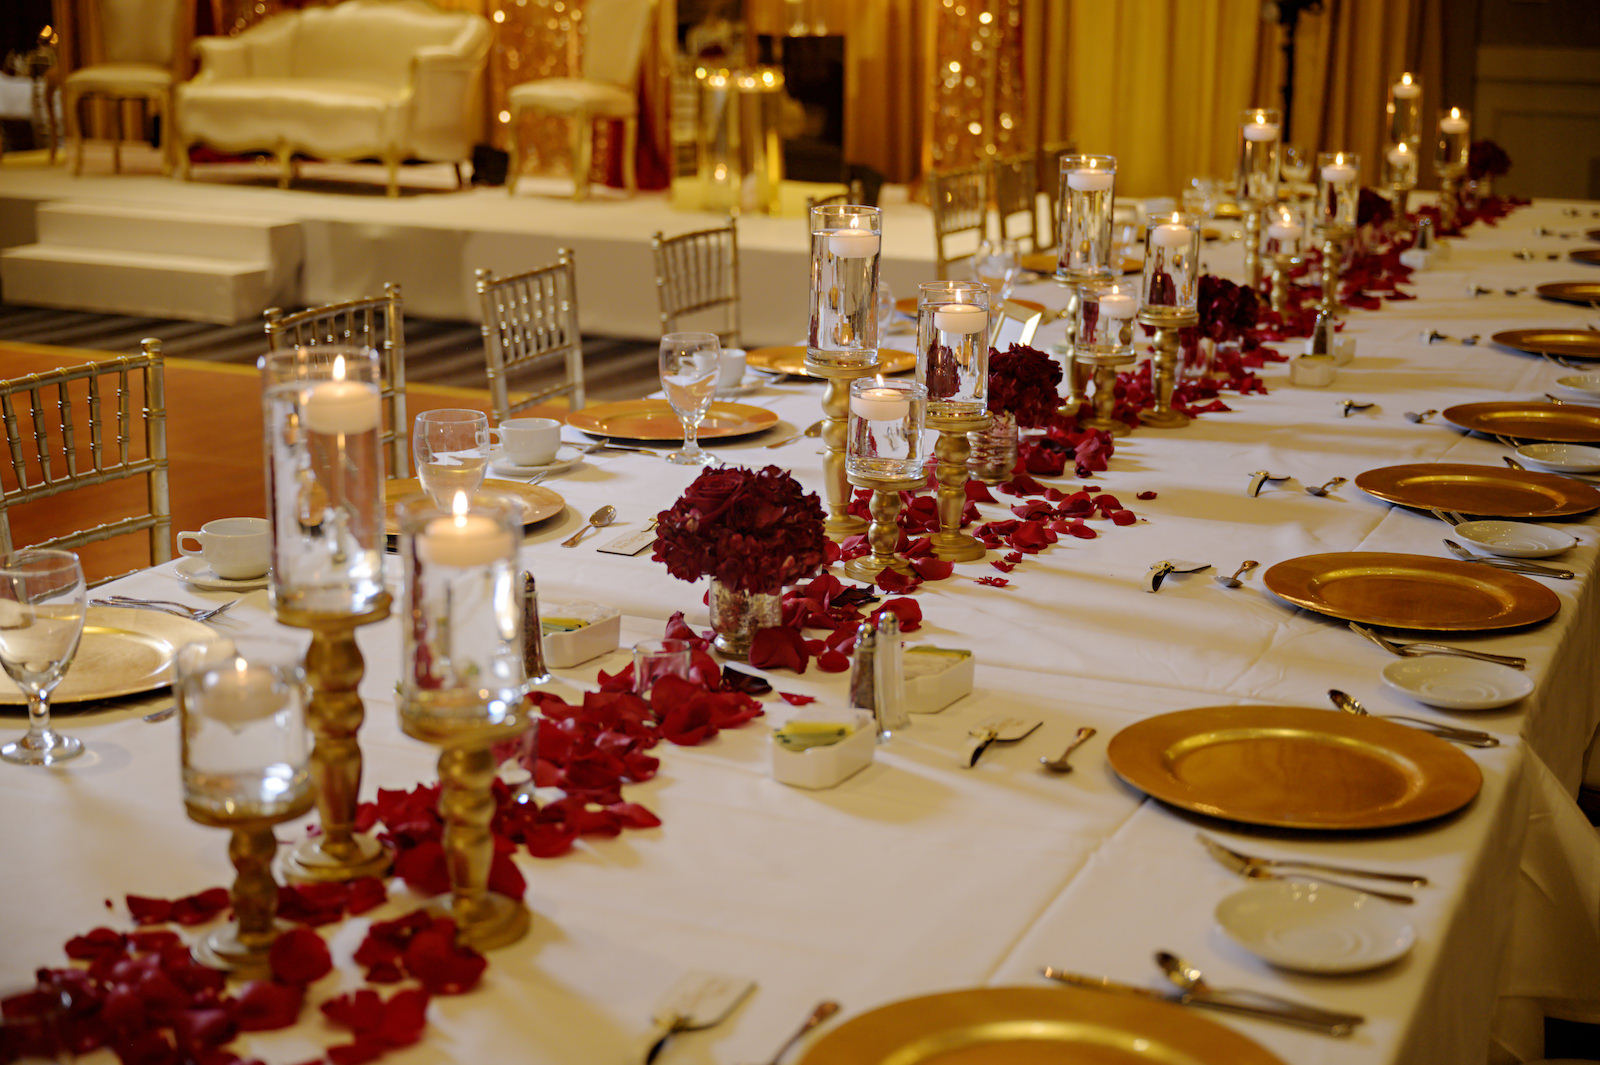 Elegant Florida Multicultural Indian Catholic Wedding Reception Feasting Table with Red Rose Petals and Gold Candle Centerpieces with Gold Chiavari Chairs and Gold Charger Plates